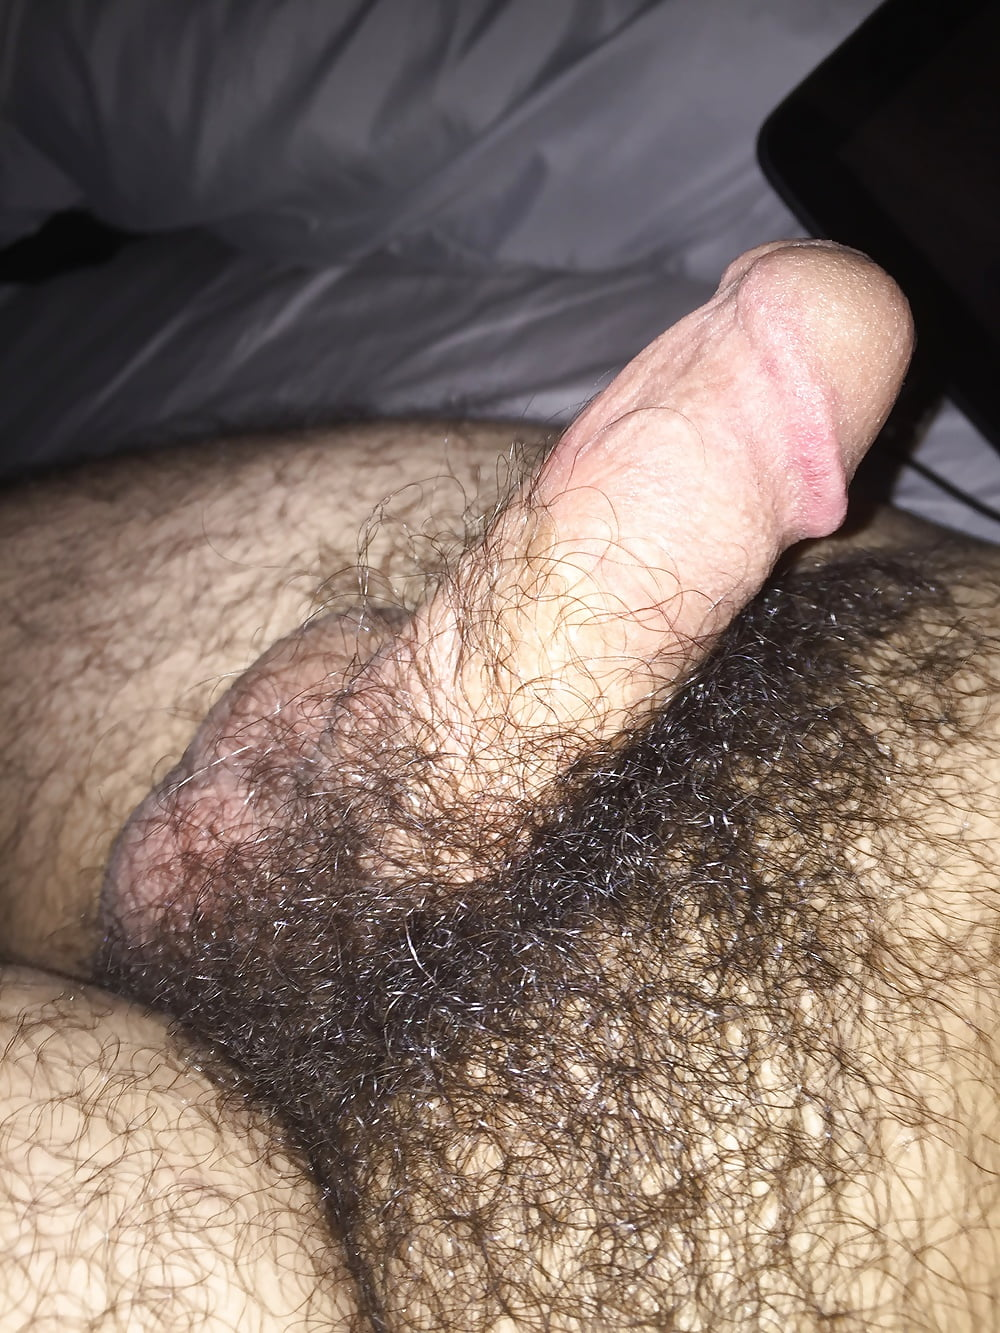 Hair off dick and balls